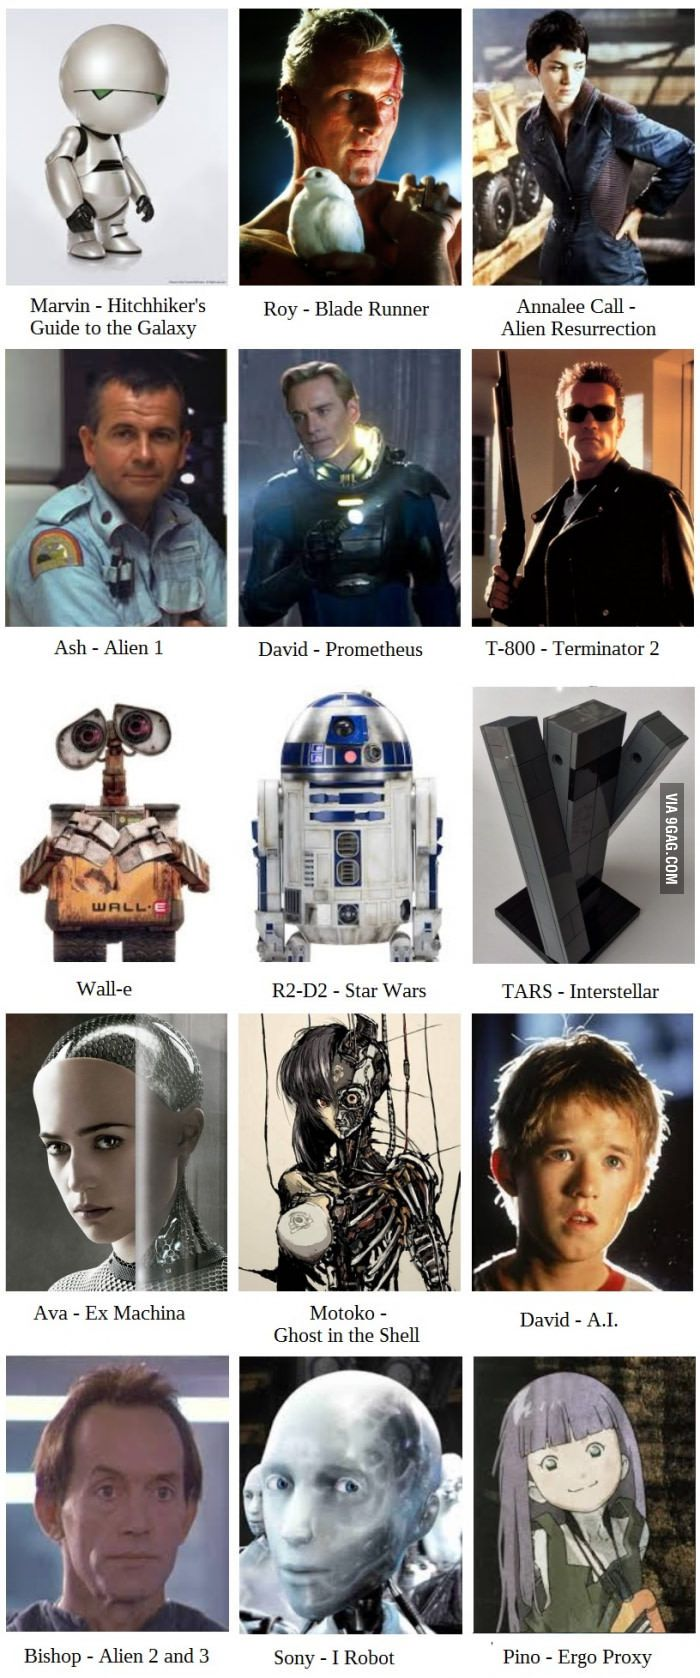 Some interesting robot/cyborg characters you should know